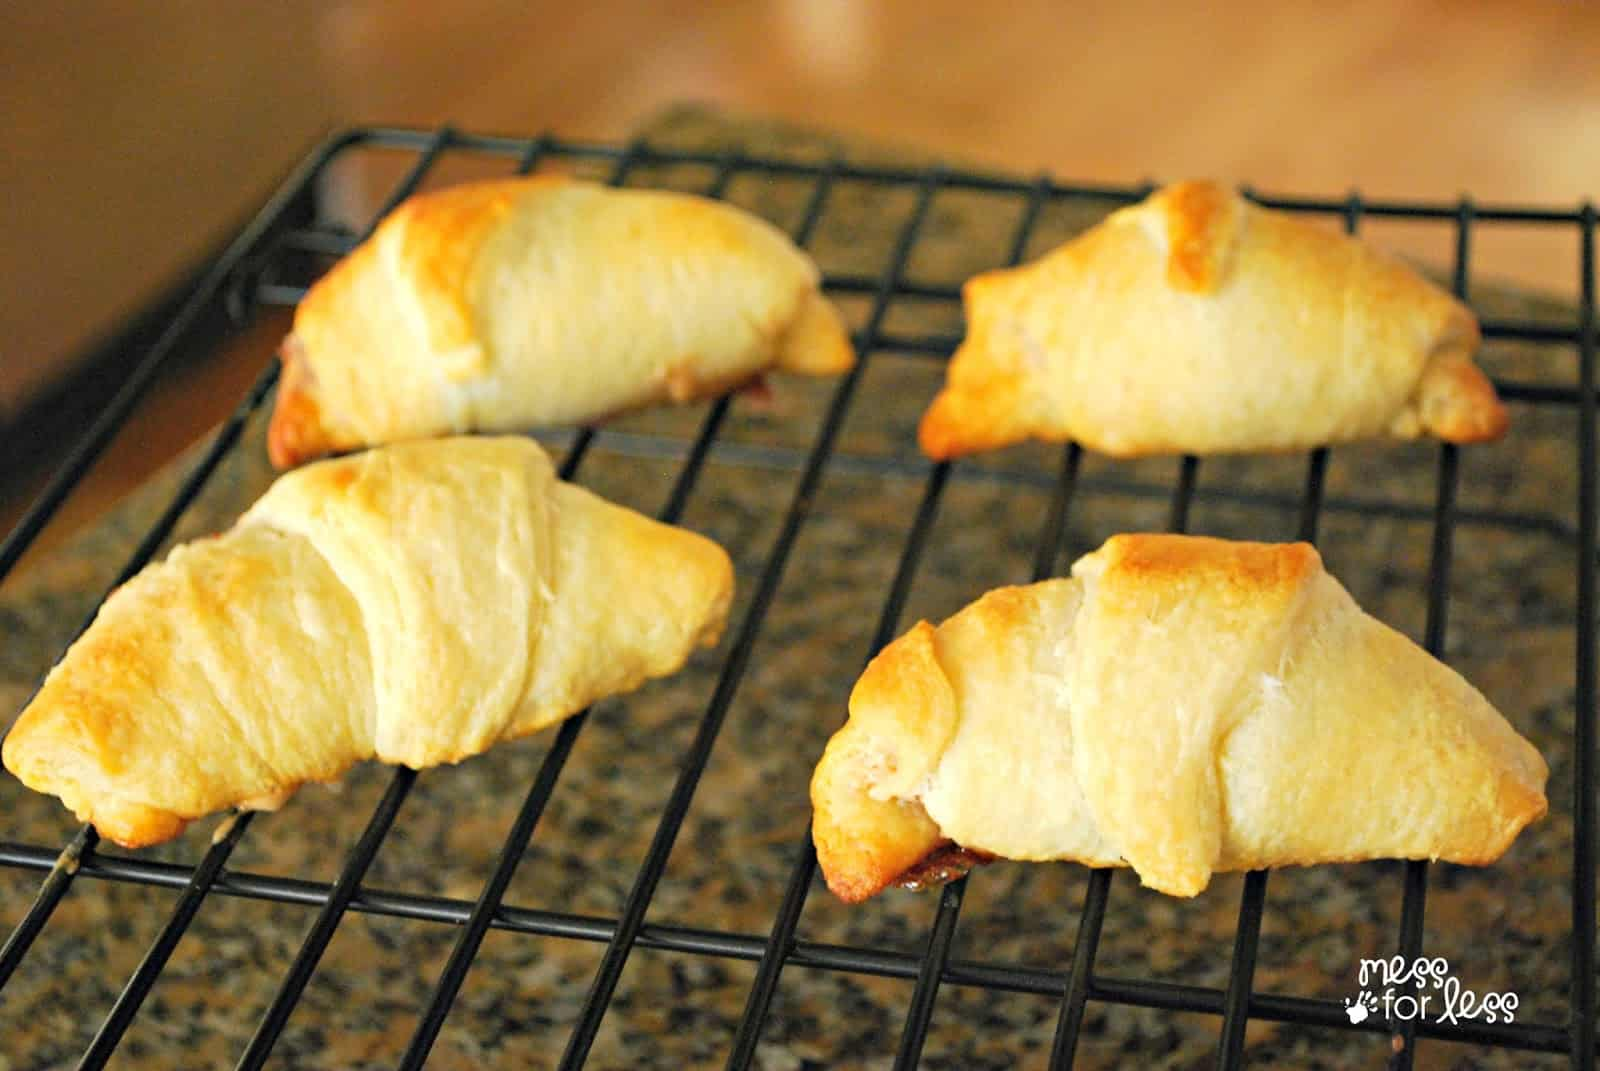 Peanut Butter and Jelly Crescents, see more at http://homemaderecipes.com/course/pastas-bread/16-crescent-roll-recipes/